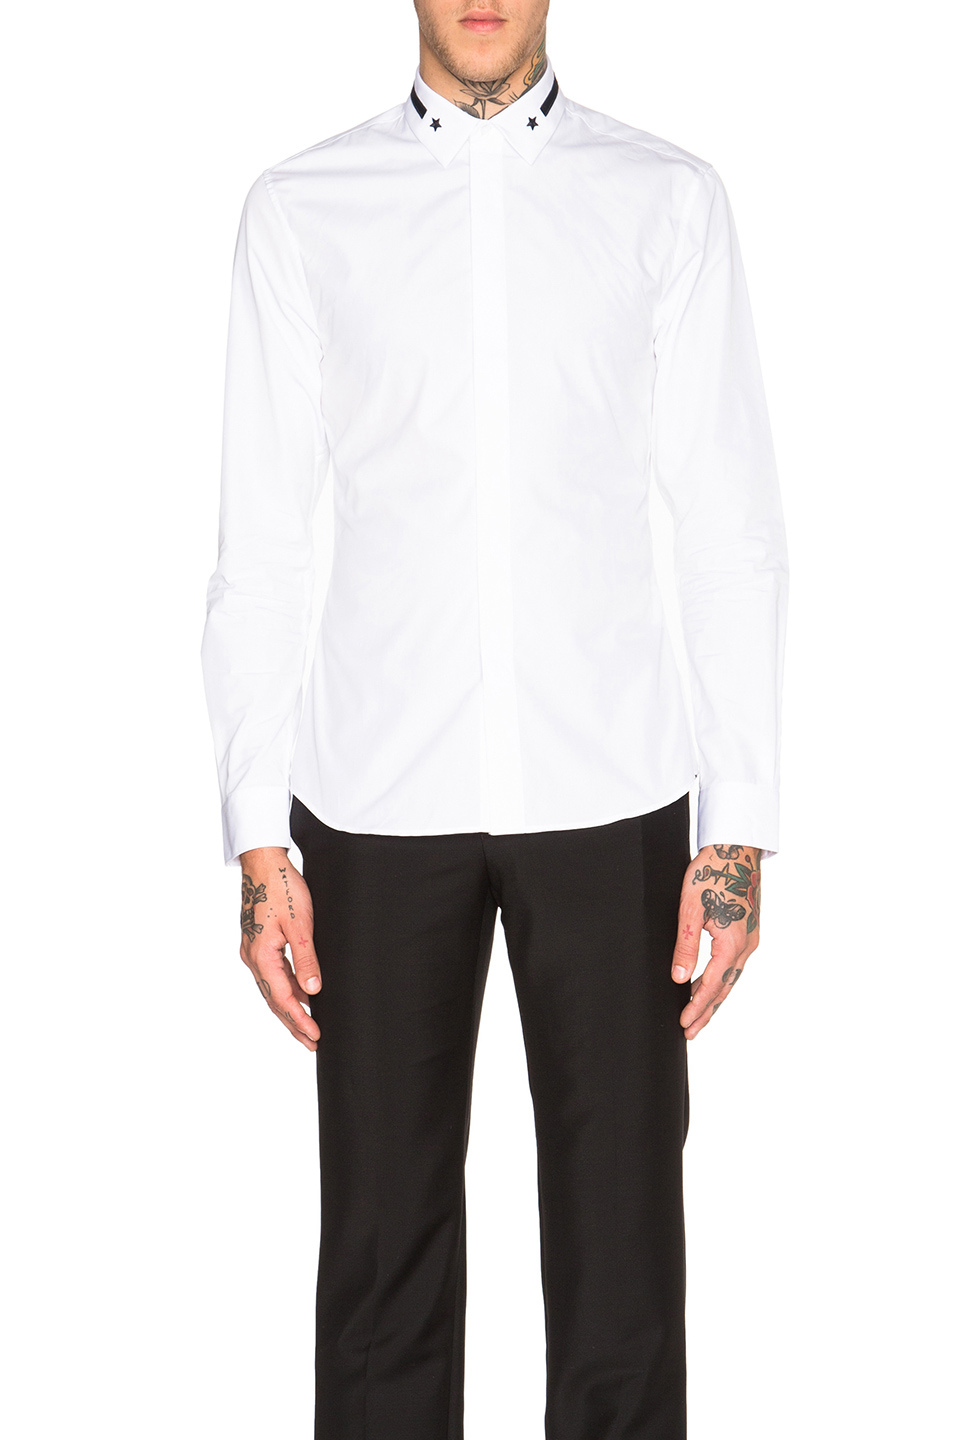 GIVENCHY Embroidered Band & Star Collar Shirt in White